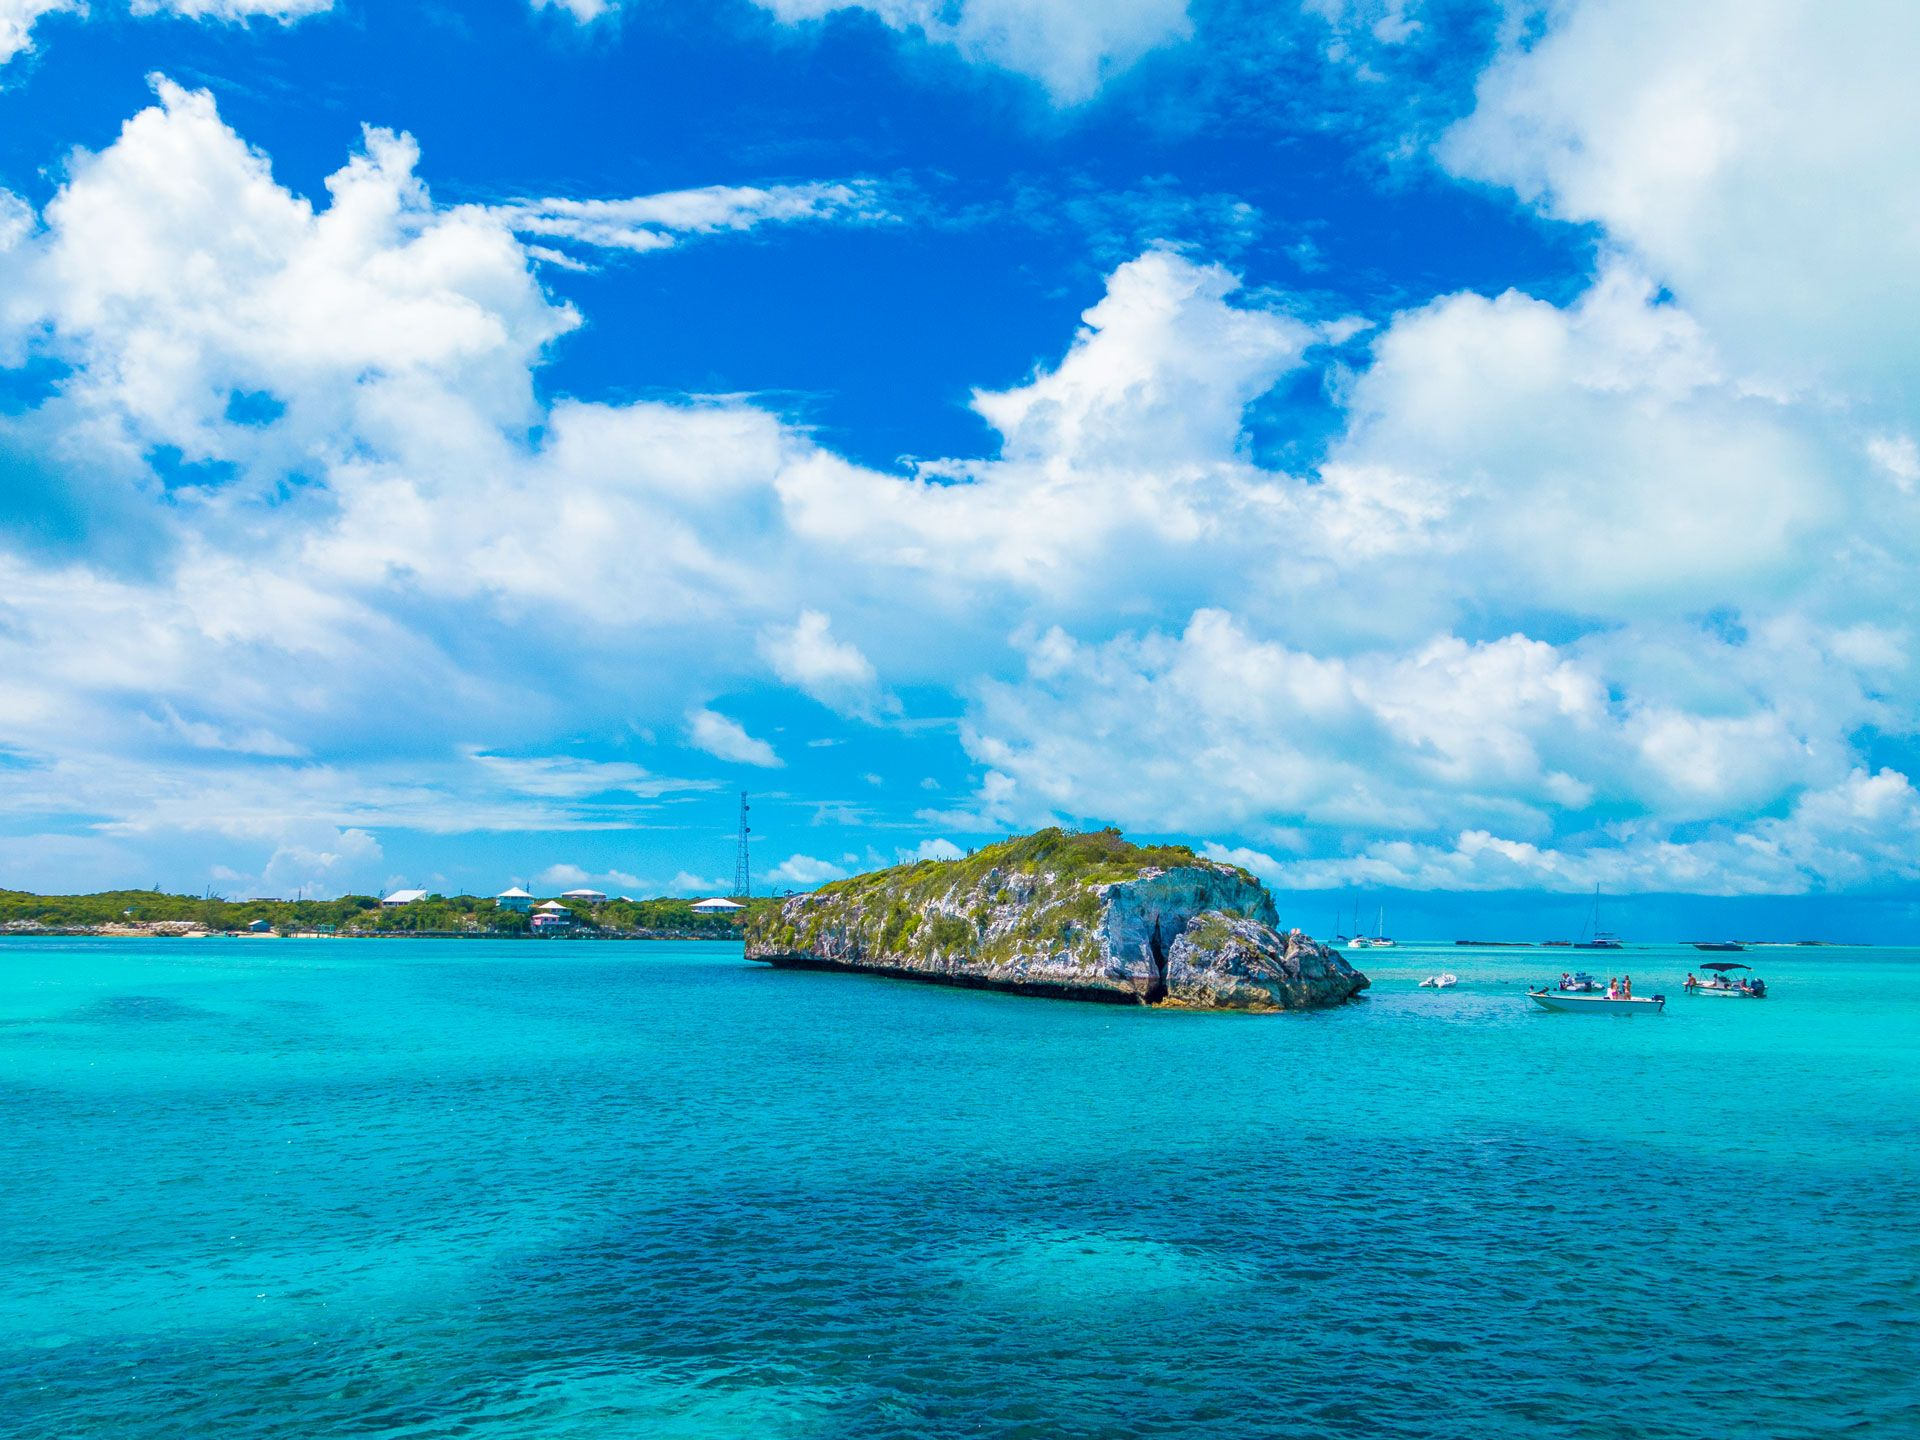 Picture Perfect Scenery: Famous Movies Filmed In The Bahamas